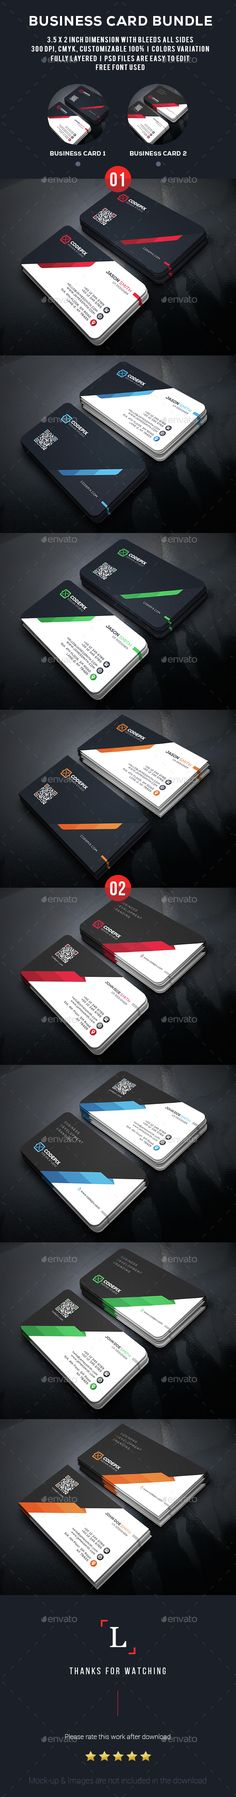 Corporate Business Card Template PSD Bundle. Download here: http://graphicriver.net/item/corporate-business-card-bundle/15379249?ref=ksioks